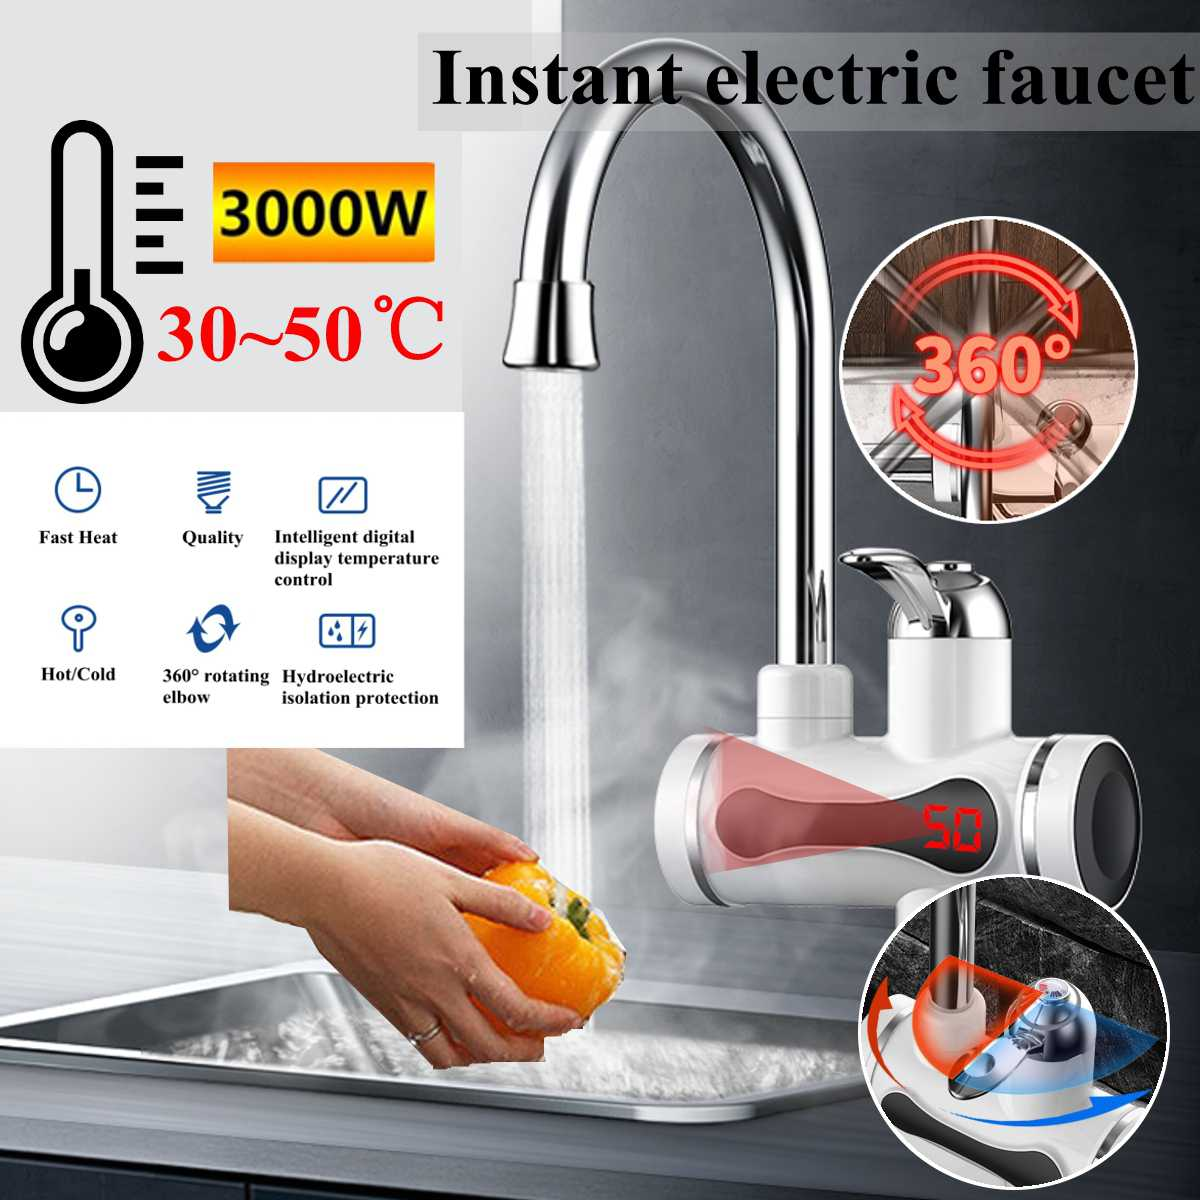 220V 3000W Instant Electric Faucet Tap Hot Water Heater 30-50 Stainless Steel Under Inflow LED Display Bathroom Kitchen